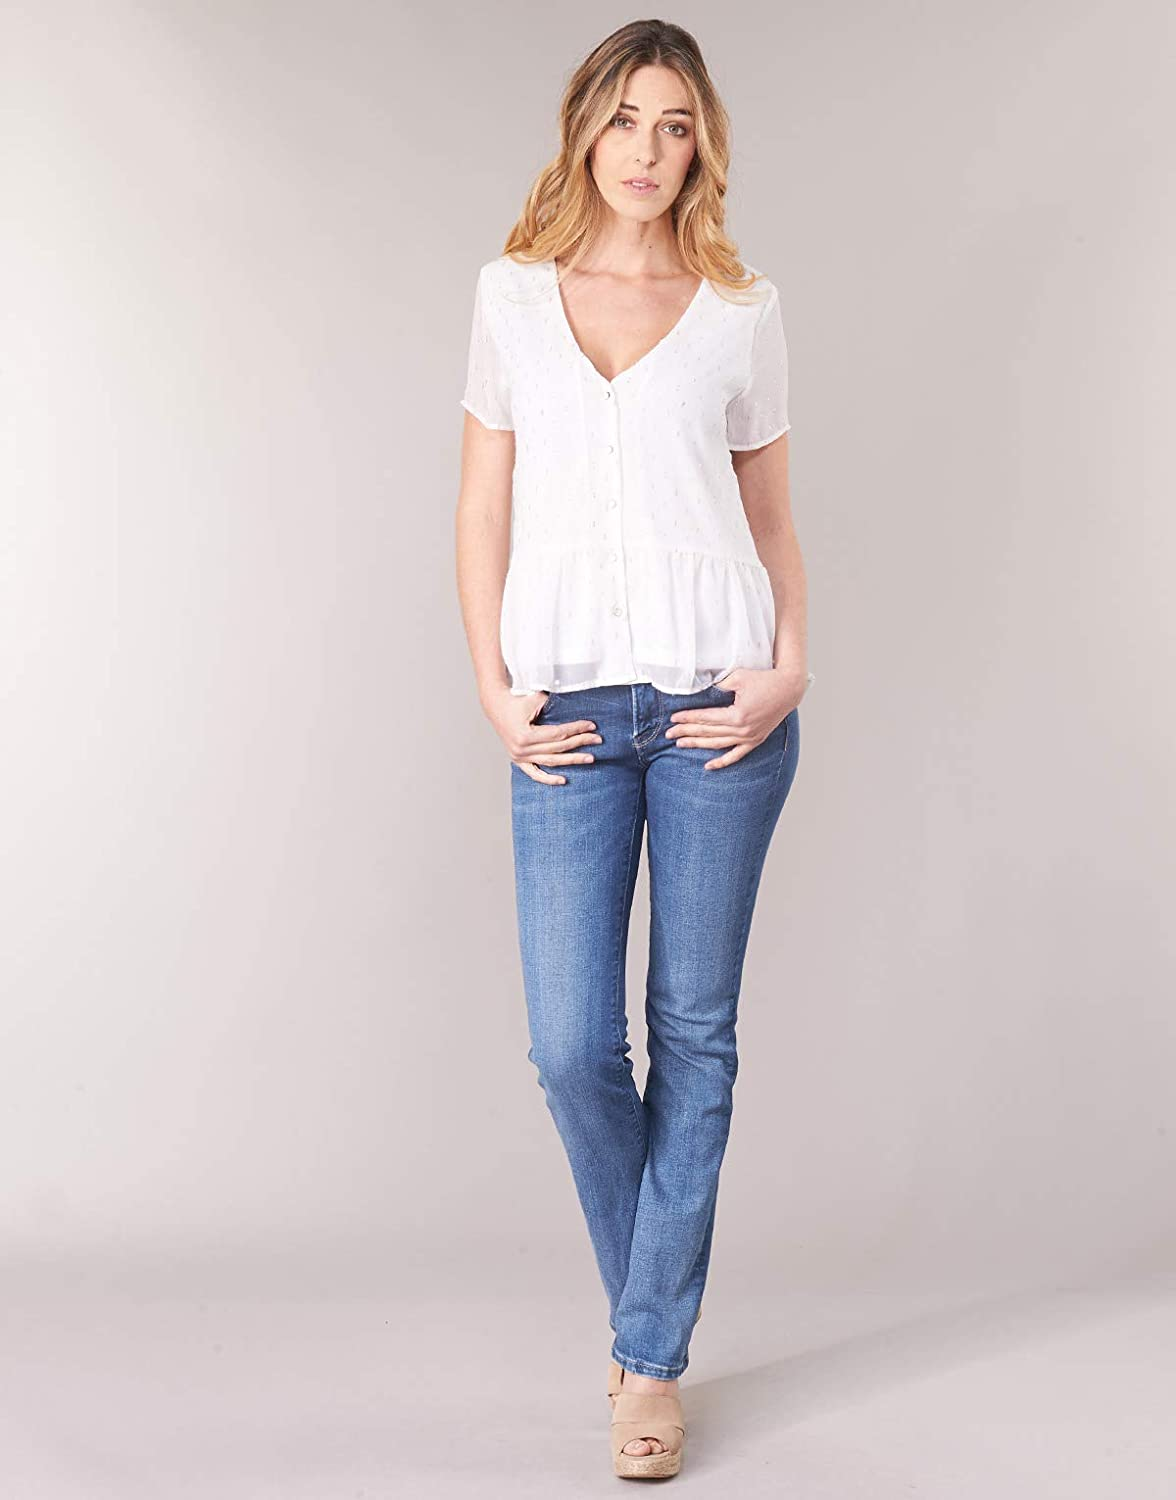 Pepe Jeans Piccadilly Jeans Femmes Blu//Clair Jeans Bootcut